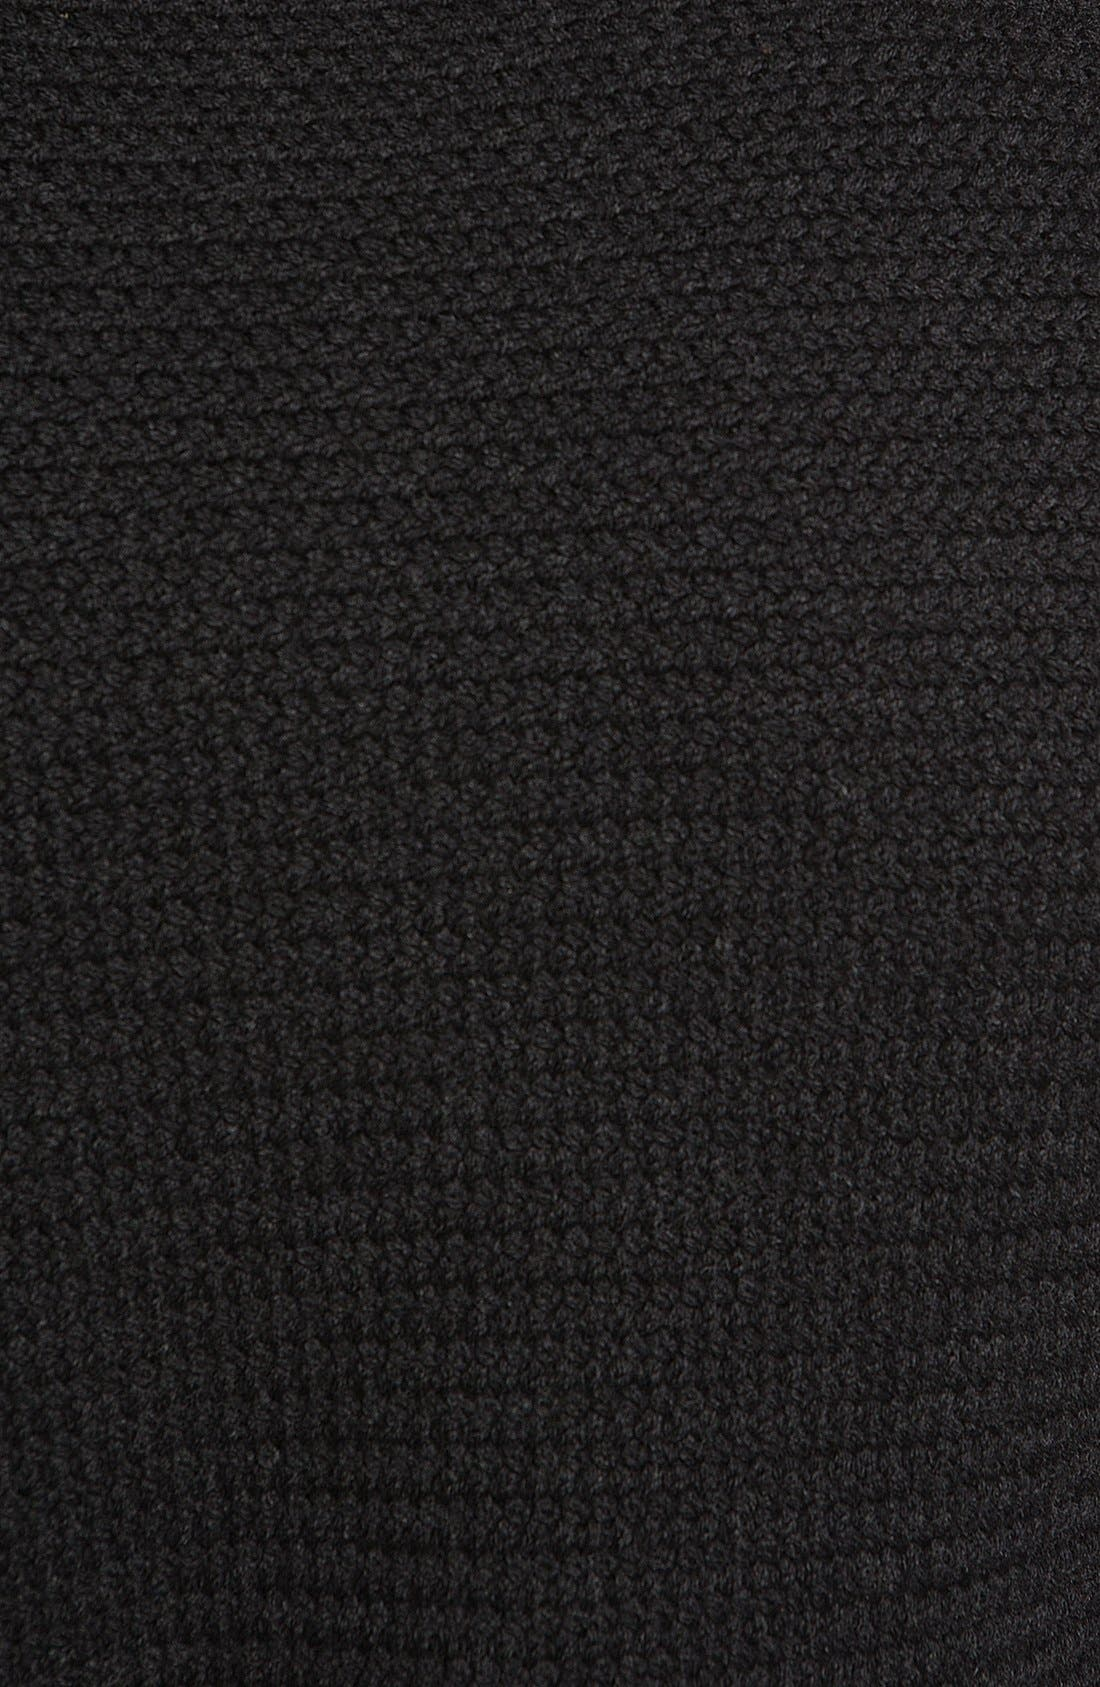 Alternate Image 3  - A.P.C. Thick Wool Crewneck Sweater